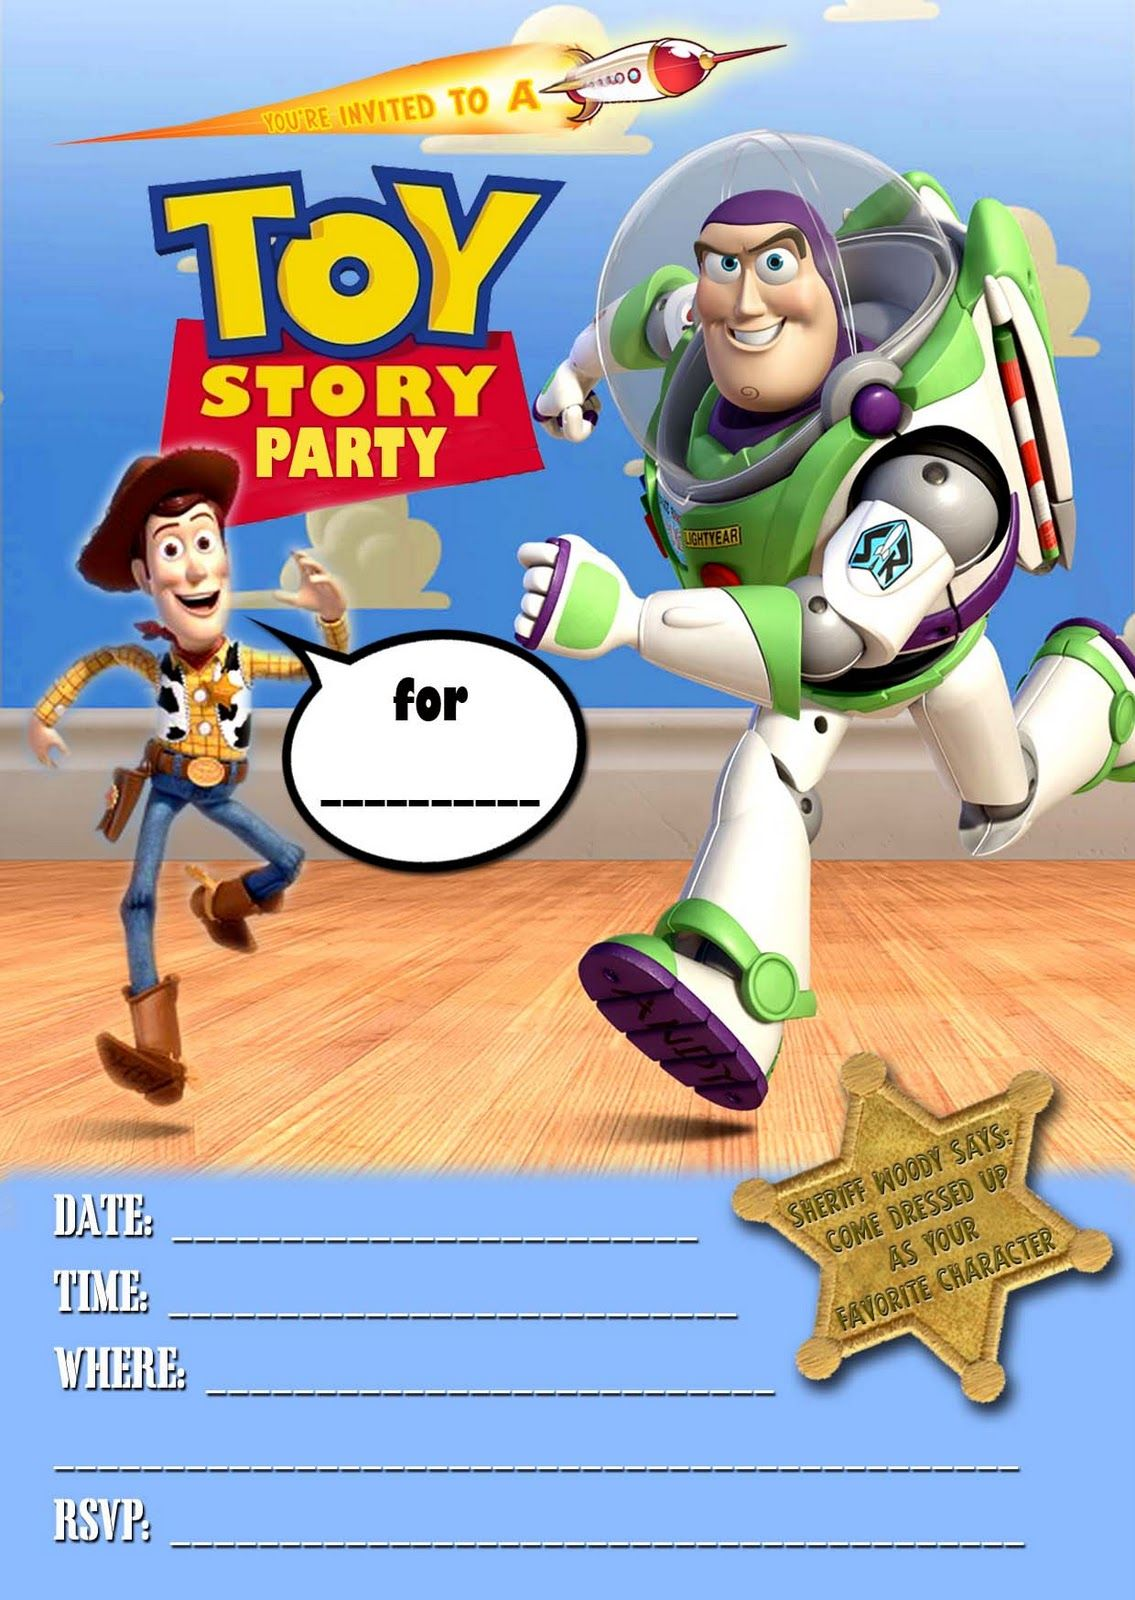 e8d13ae2e3e27b5bf8c7243ada6ec0ff free kids party invitations toy story party invitation *new,Toy Story Birthday Party Invitations